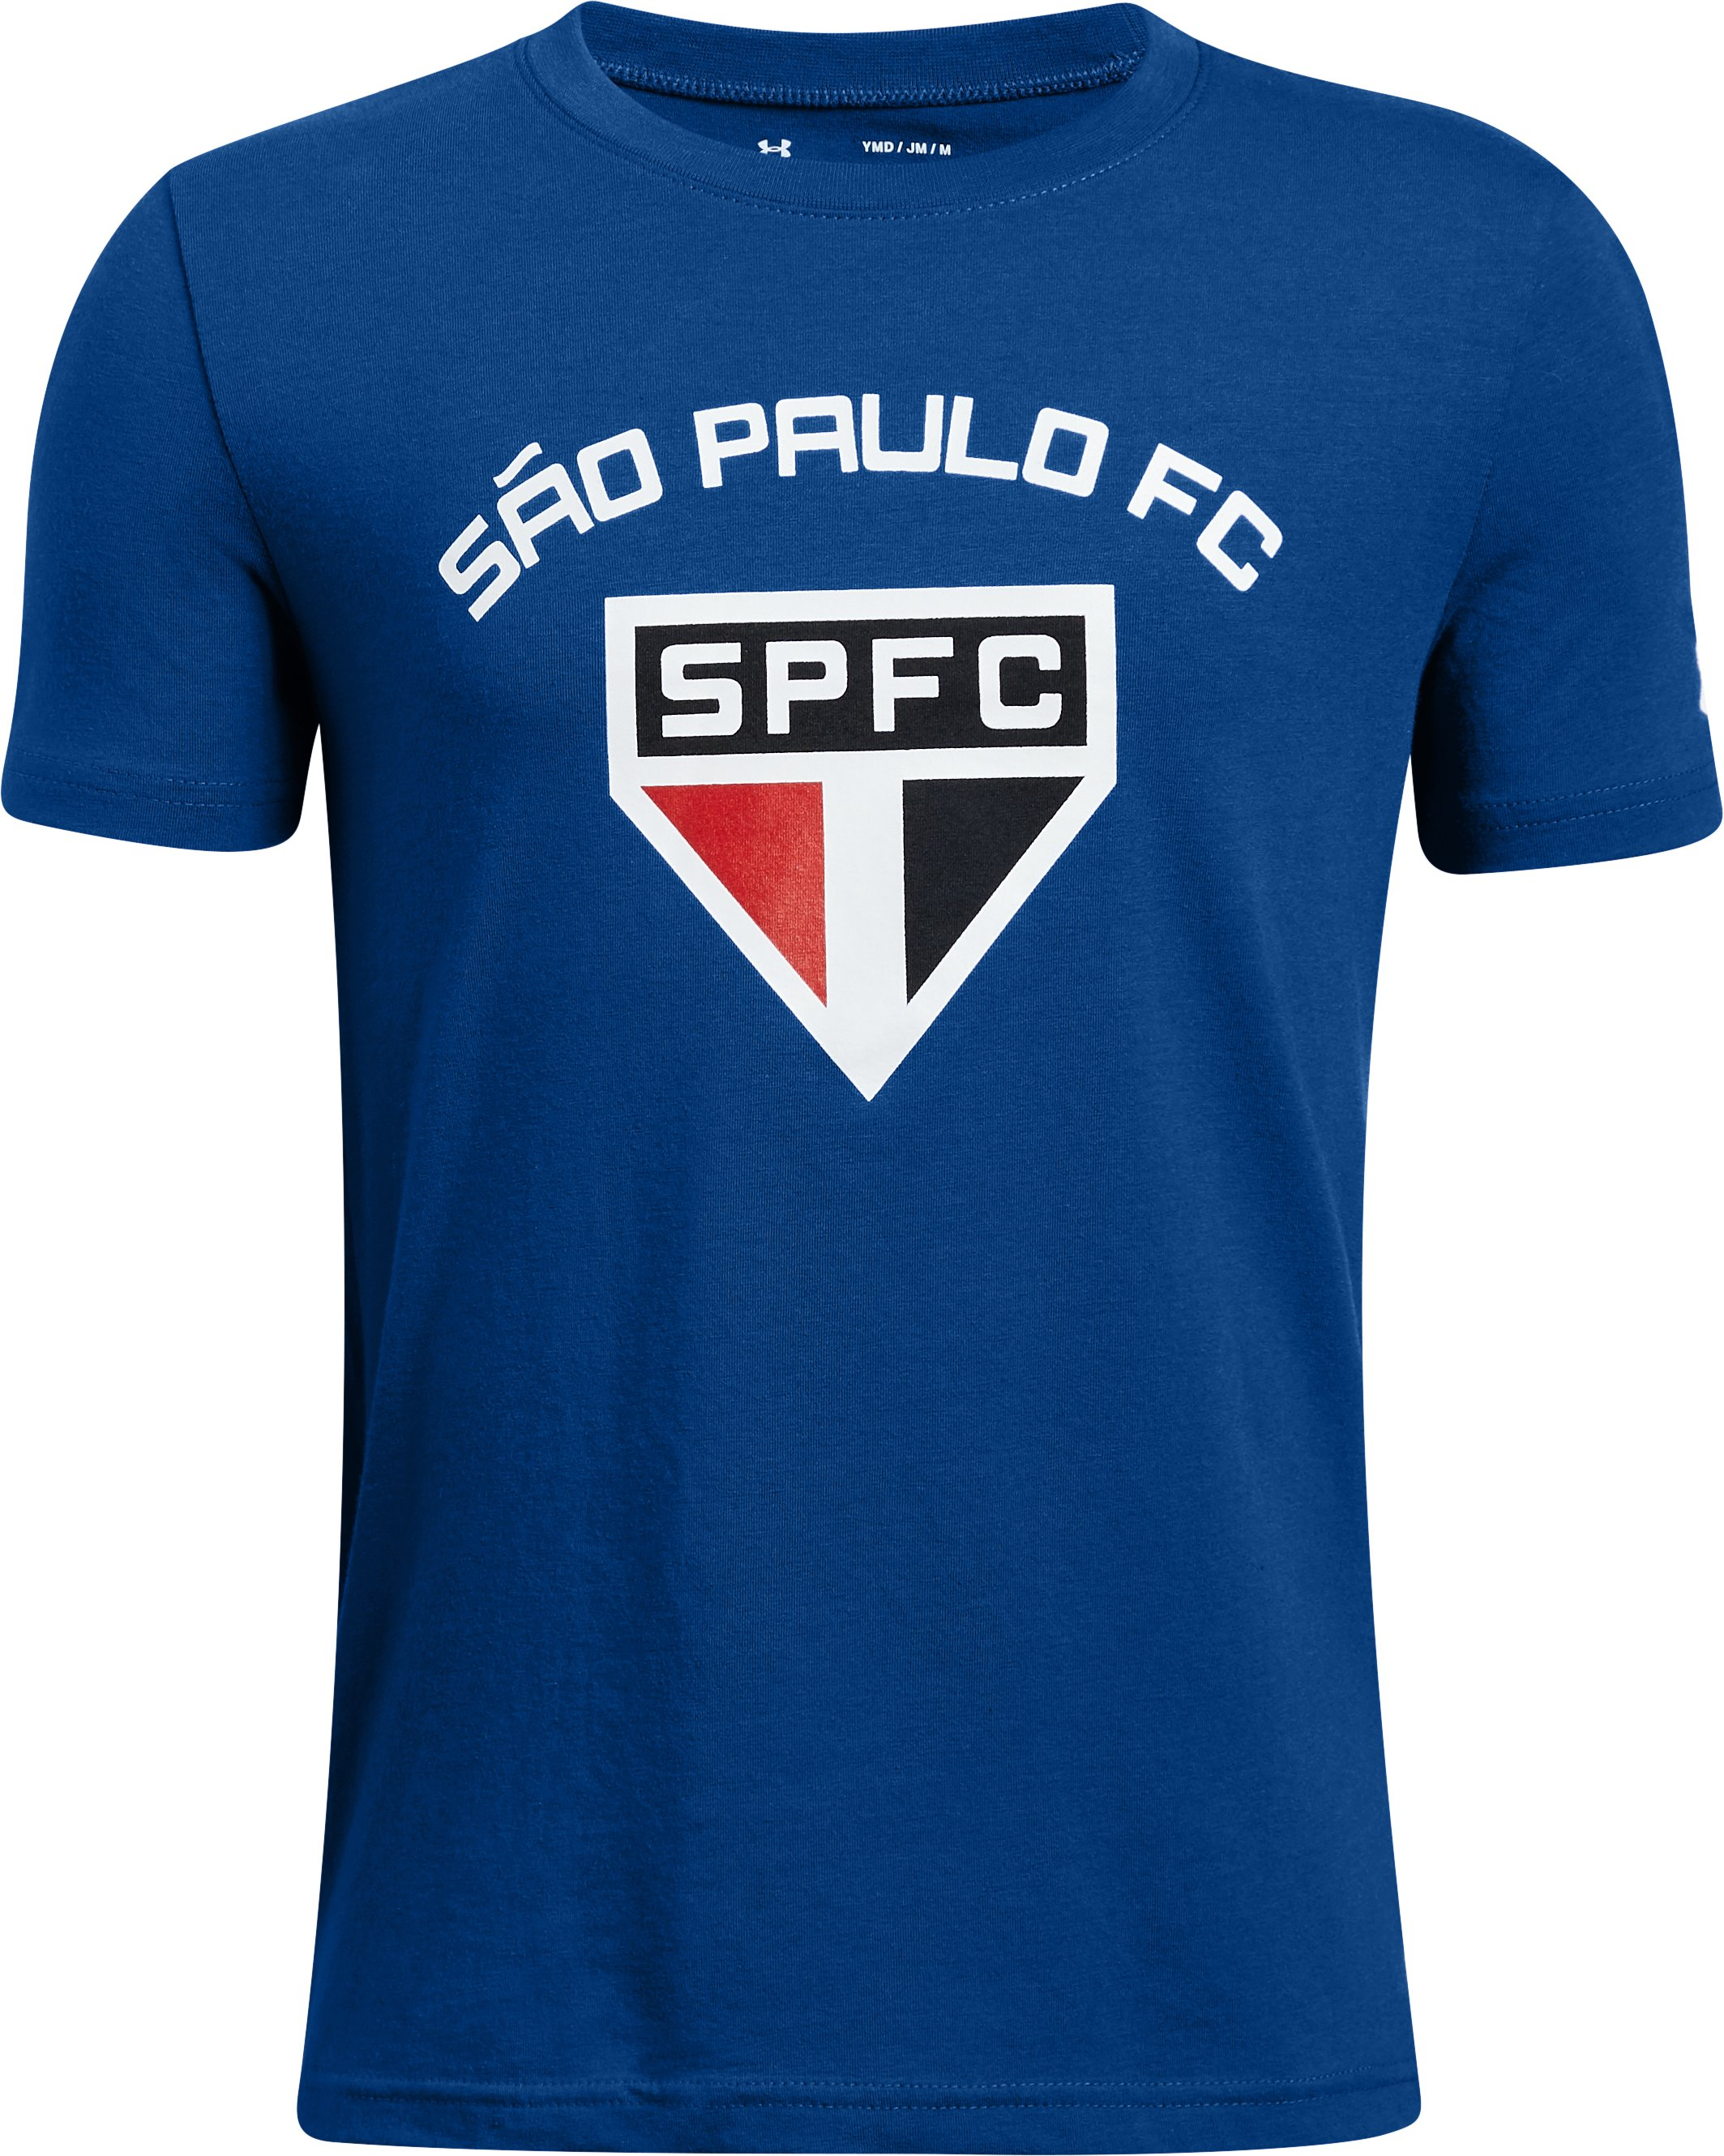 Kids' SPFC Commemorative T-Shirt, Royal, undefined